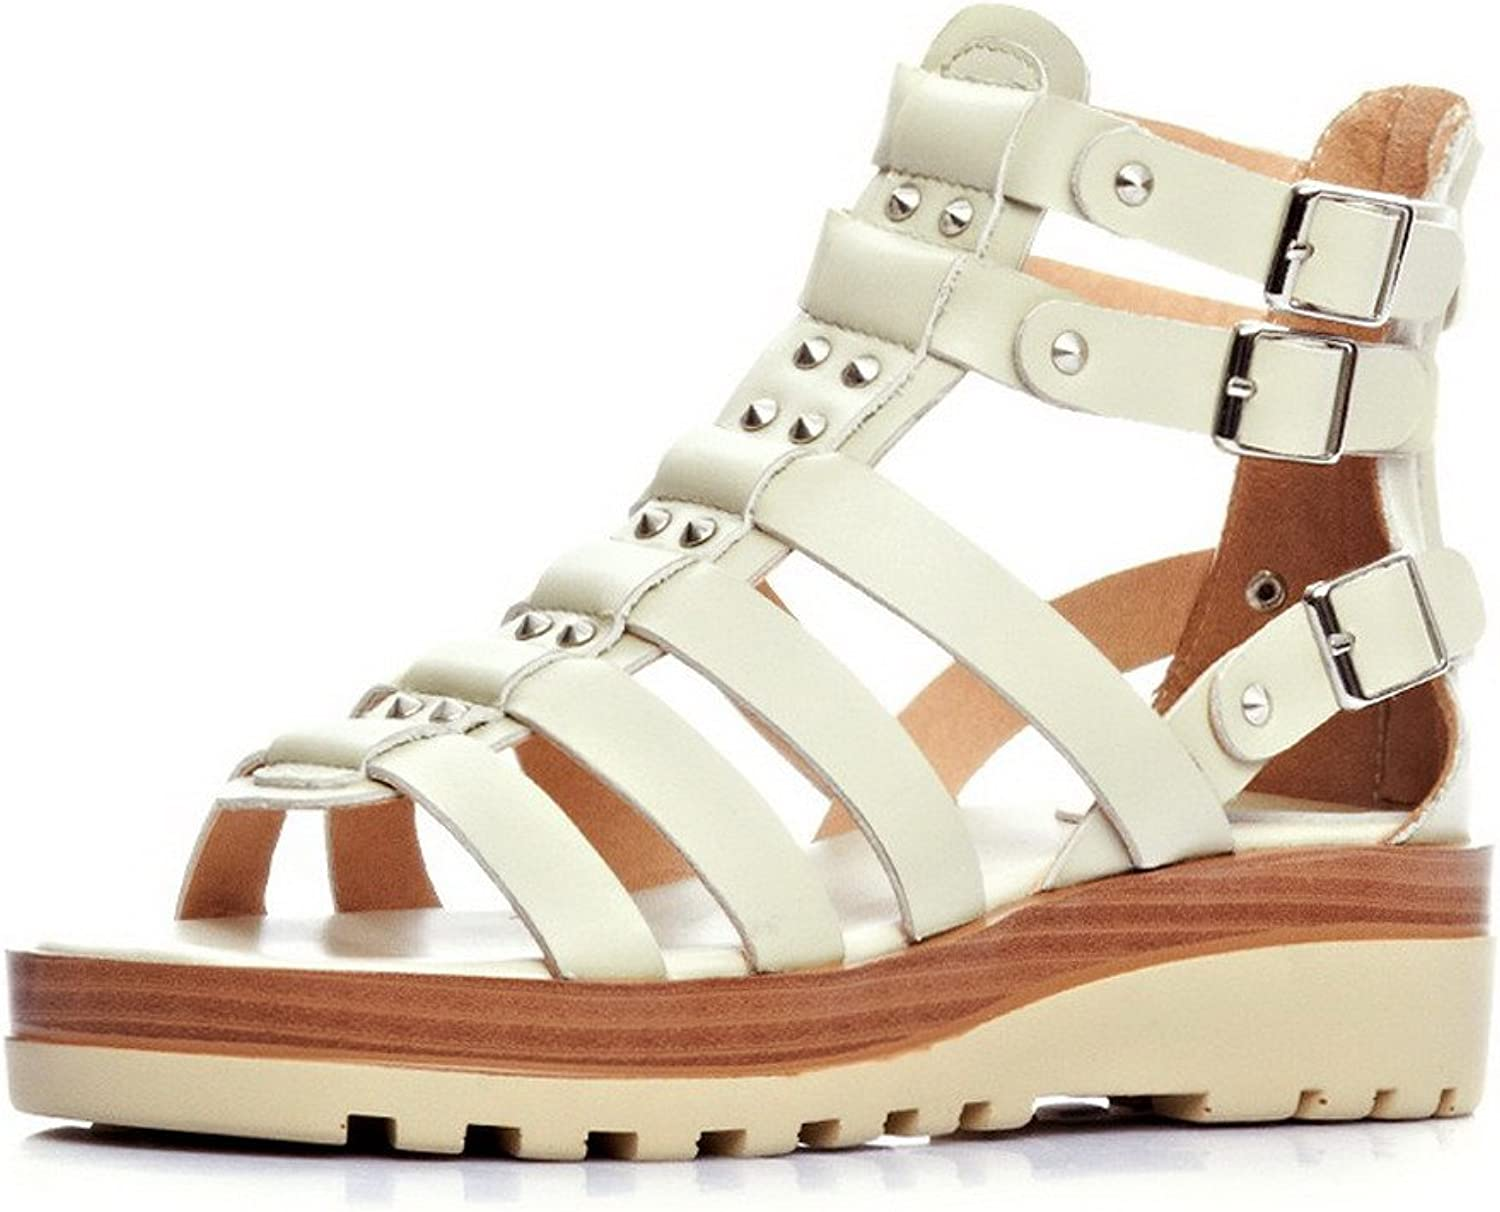 AllhqFashion Women's Open Toe Low Heels Cow Leather Solid Sandals with Wrist Strap and Studded